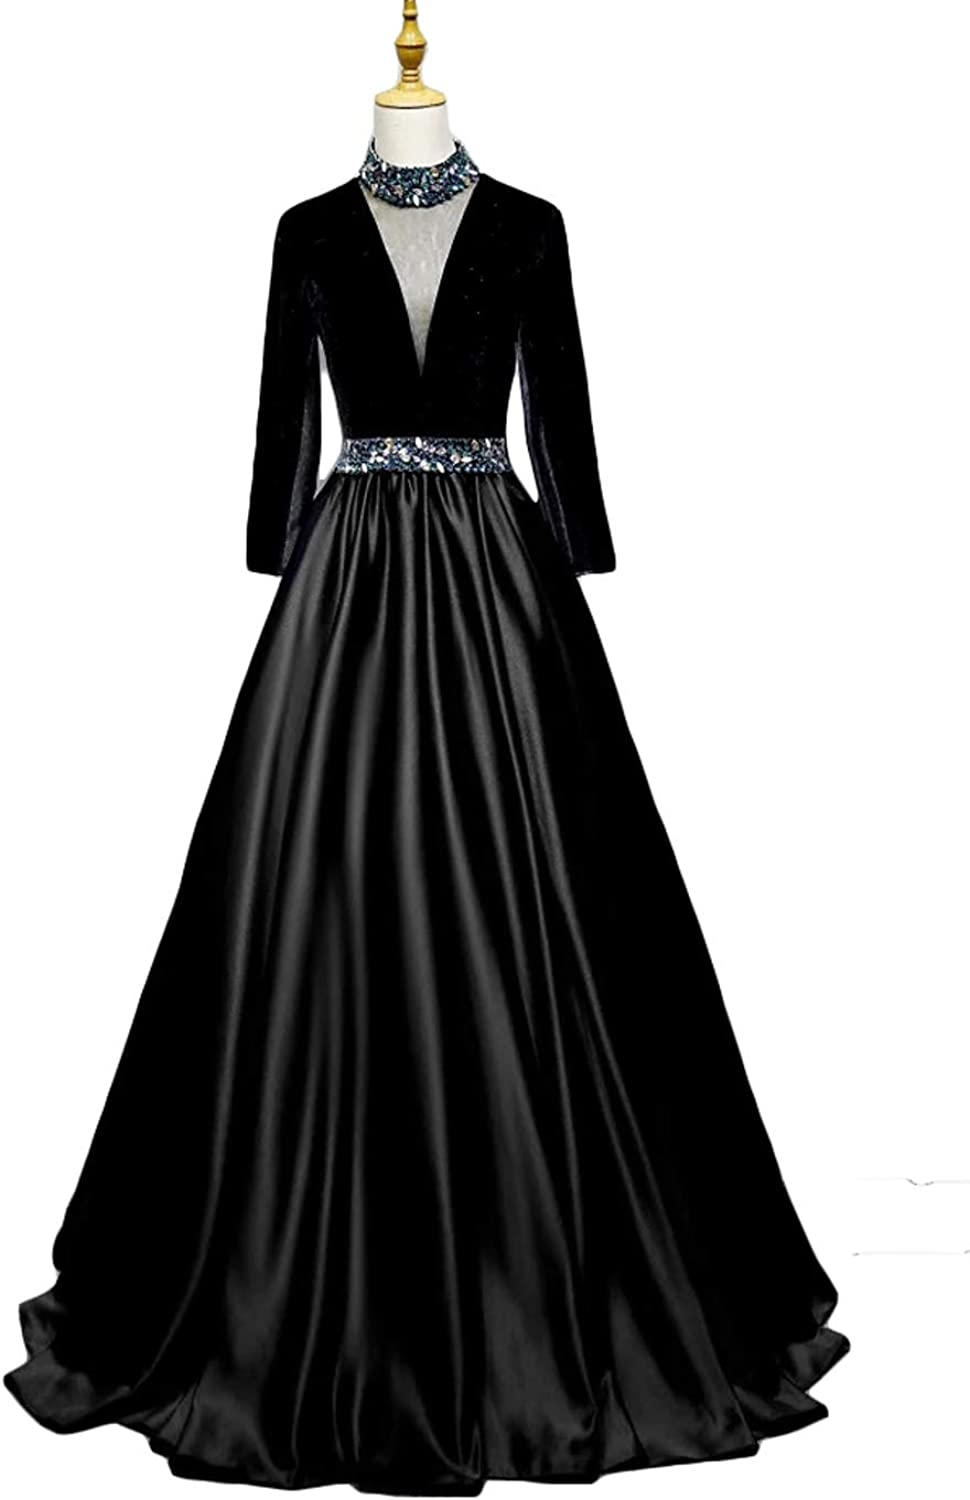 DKBridal Women's Long Black Evening Dresses Long Sleeves Sleeveless Beaded Prom Gowns Lace Applique Wedding Party Dresses